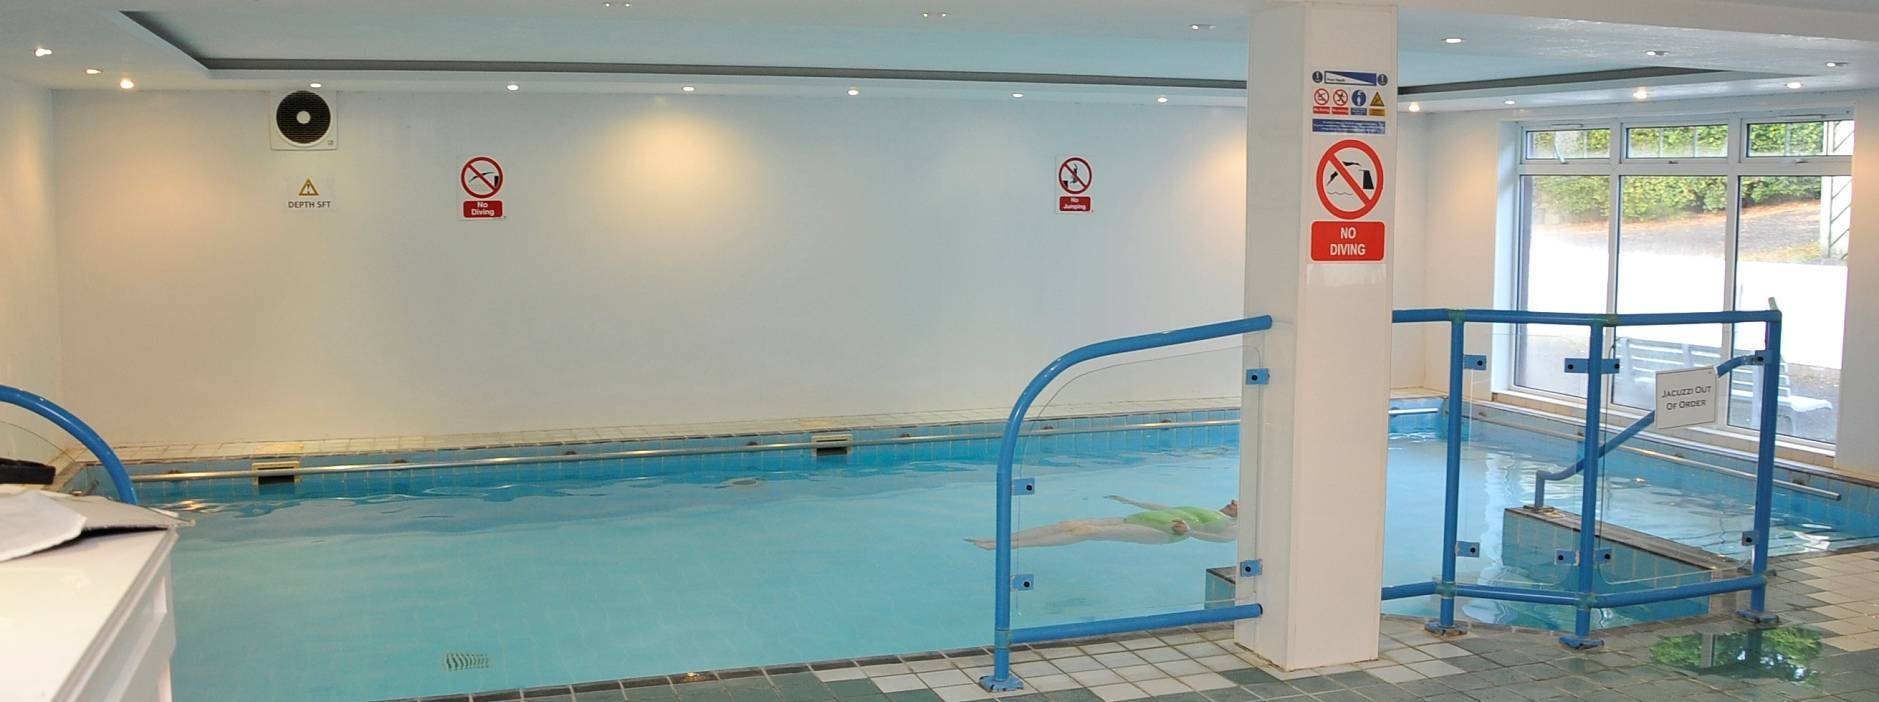 Indoor Pool bushtown Hotel Coleraine Londonderry